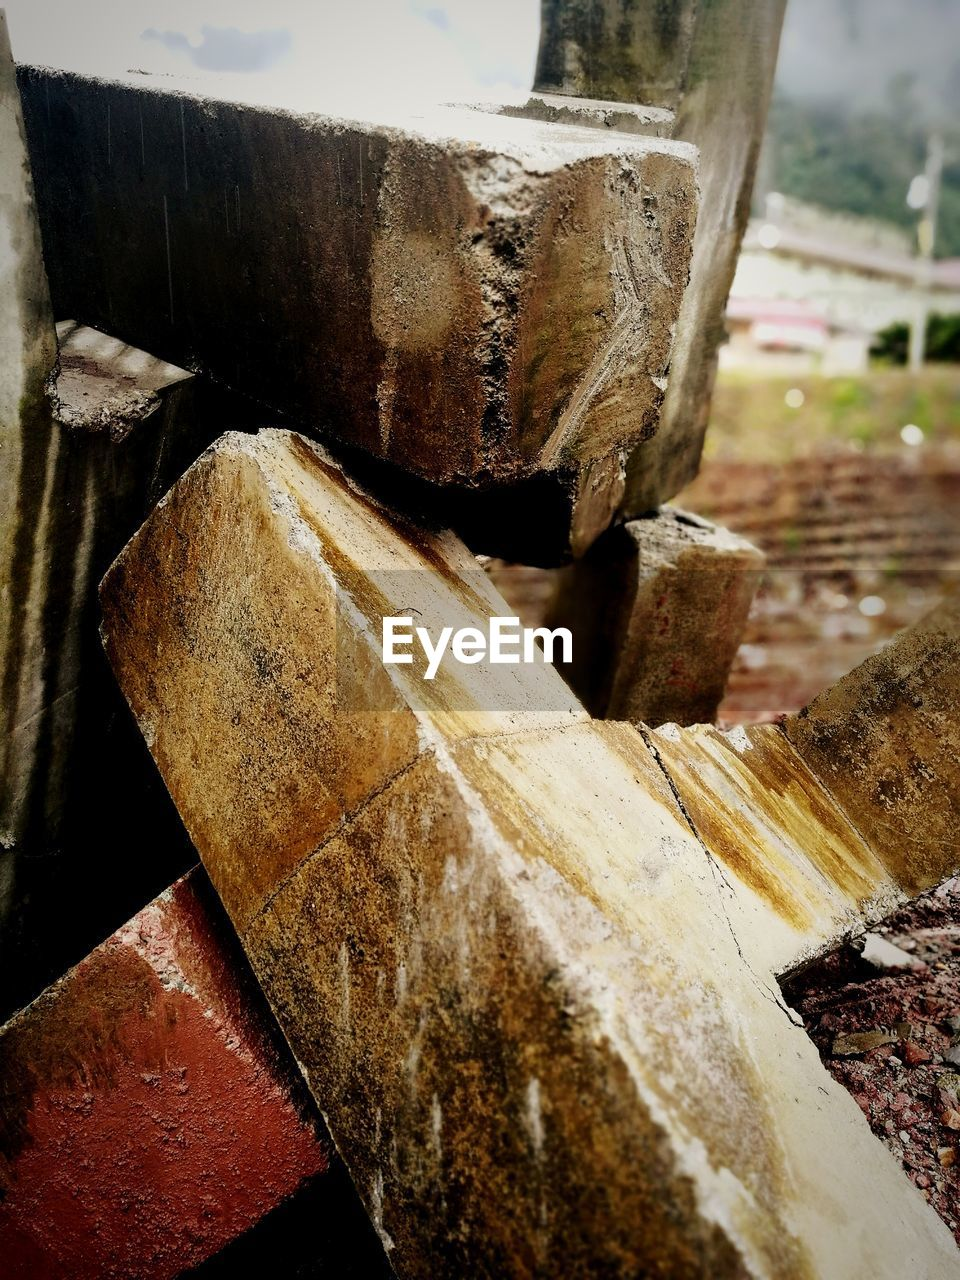 wood - material, timber, close-up, wood, log, no people, firewood, deforestation, focus on foreground, stack, lumber industry, tree, outdoors, day, fuel and power generation, forest, nature, fossil fuel, large group of objects, environmental issues